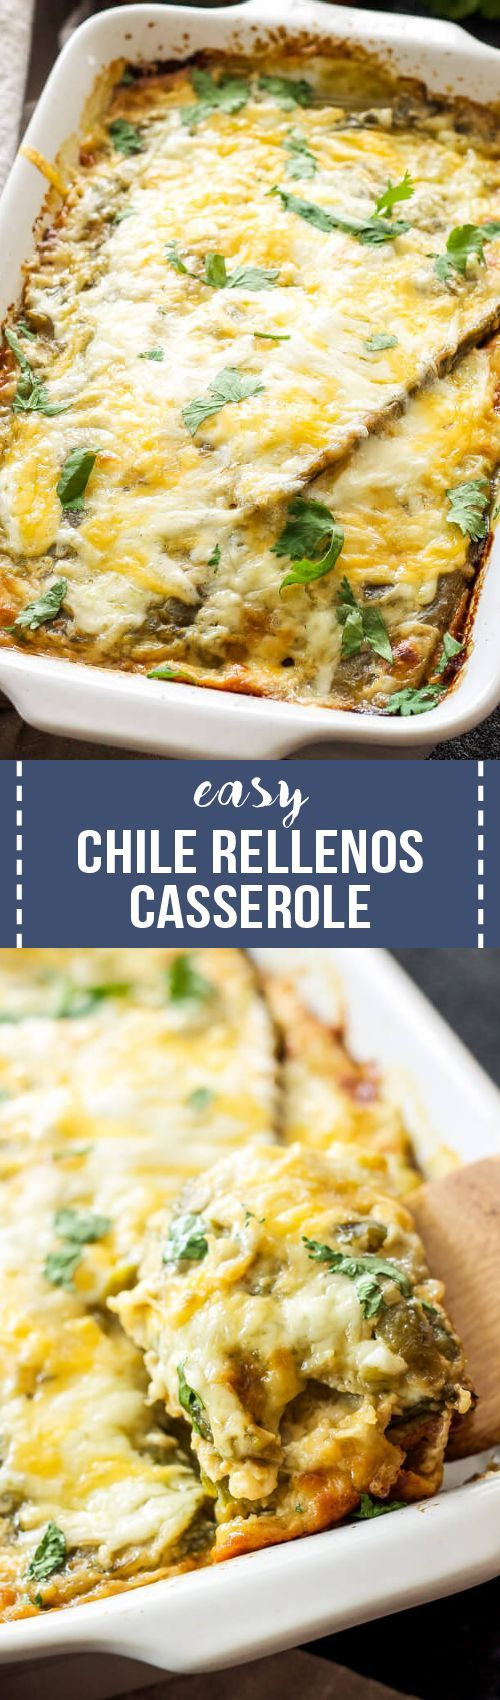 Easy Chile Rellenos Casserole is a comfort food dinner or breakfast everyone will love! This quiche-like casserole made up of layers of green chiles and cheese is a meal even the most novice cook can put together!